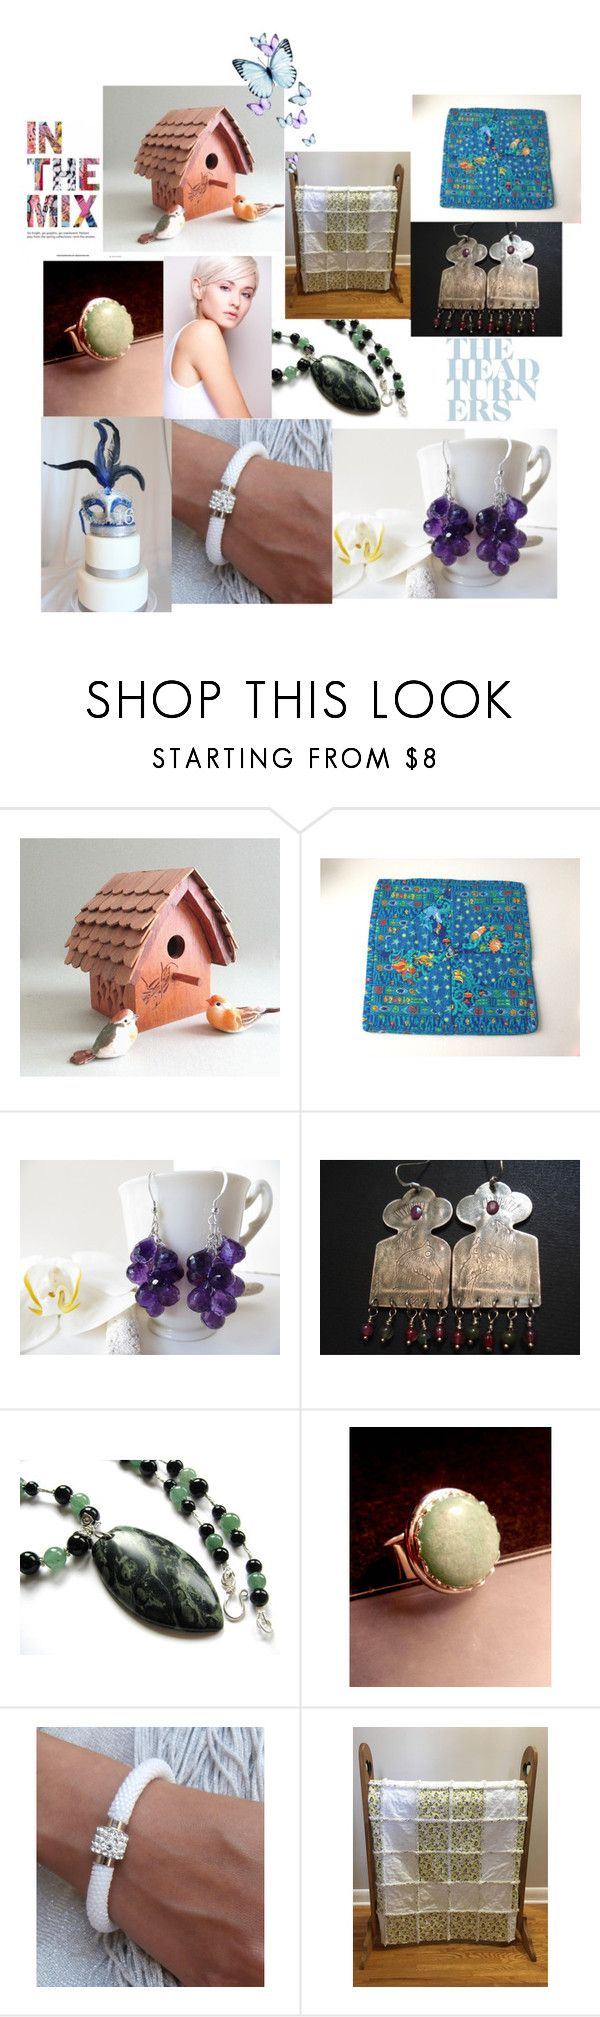 The Head Turners by A Floral Affair on Etsy by afloralaffair-1 on Polyvore featuring interior, interiors, interior design, home, home decor, interior decorating, Masquerade and vintage